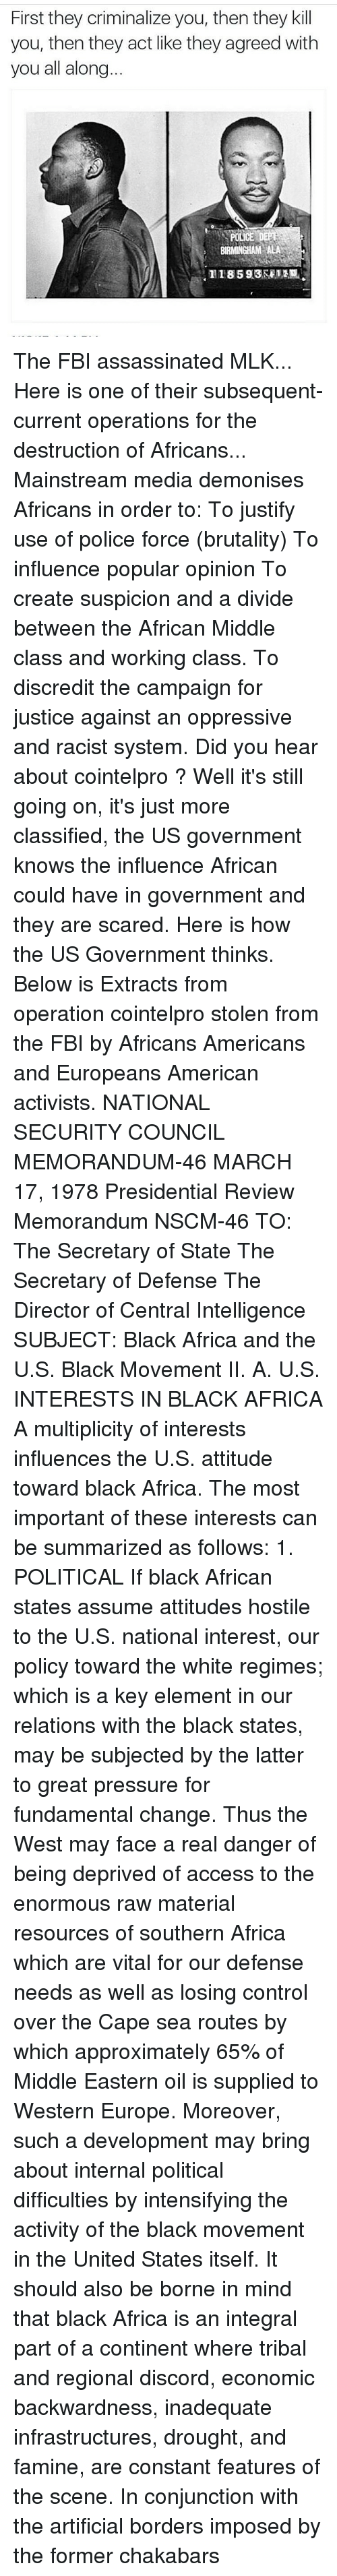 Fundamentalism: First they criminalize you, then they kill  you, then they act like they agreed with  you all along  BIRMINGHAM ALA The FBI assassinated MLK... Here is one of their subsequent-current operations for the destruction of Africans... Mainstream media demonises Africans in order to: To justify use of police force (brutality) To influence popular opinion To create suspicion and a divide between the African Middle class and working class. To discredit the campaign for justice against an oppressive and racist system. Did you hear about cointelpro ? Well it's still going on, it's just more classified, the US government knows the influence African could have in government and they are scared. Here is how the US Government thinks. Below is Extracts from operation cointelpro stolen from the FBI by Africans Americans and Europeans American activists. NATIONAL SECURITY COUNCIL MEMORANDUM-46 MARCH 17, 1978 Presidential Review Memorandum NSCM-46 TO: The Secretary of State The Secretary of Defense The Director of Central Intelligence SUBJECT: Black Africa and the U.S. Black Movement II. A. U.S. INTERESTS IN BLACK AFRICA A multiplicity of interests influences the U.S. attitude toward black Africa. The most important of these interests can be summarized as follows: 1. POLITICAL If black African states assume attitudes hostile to the U.S. national interest, our policy toward the white regimes; which is a key element in our relations with the black states, may be subjected by the latter to great pressure for fundamental change. Thus the West may face a real danger of being deprived of access to the enormous raw material resources of southern Africa which are vital for our defense needs as well as losing control over the Cape sea routes by which approximately 65% of Middle Eastern oil is supplied to Western Europe. Moreover, such a development may bring about internal political difficulties by intensifying the activity of the black movement in the United States itself. It